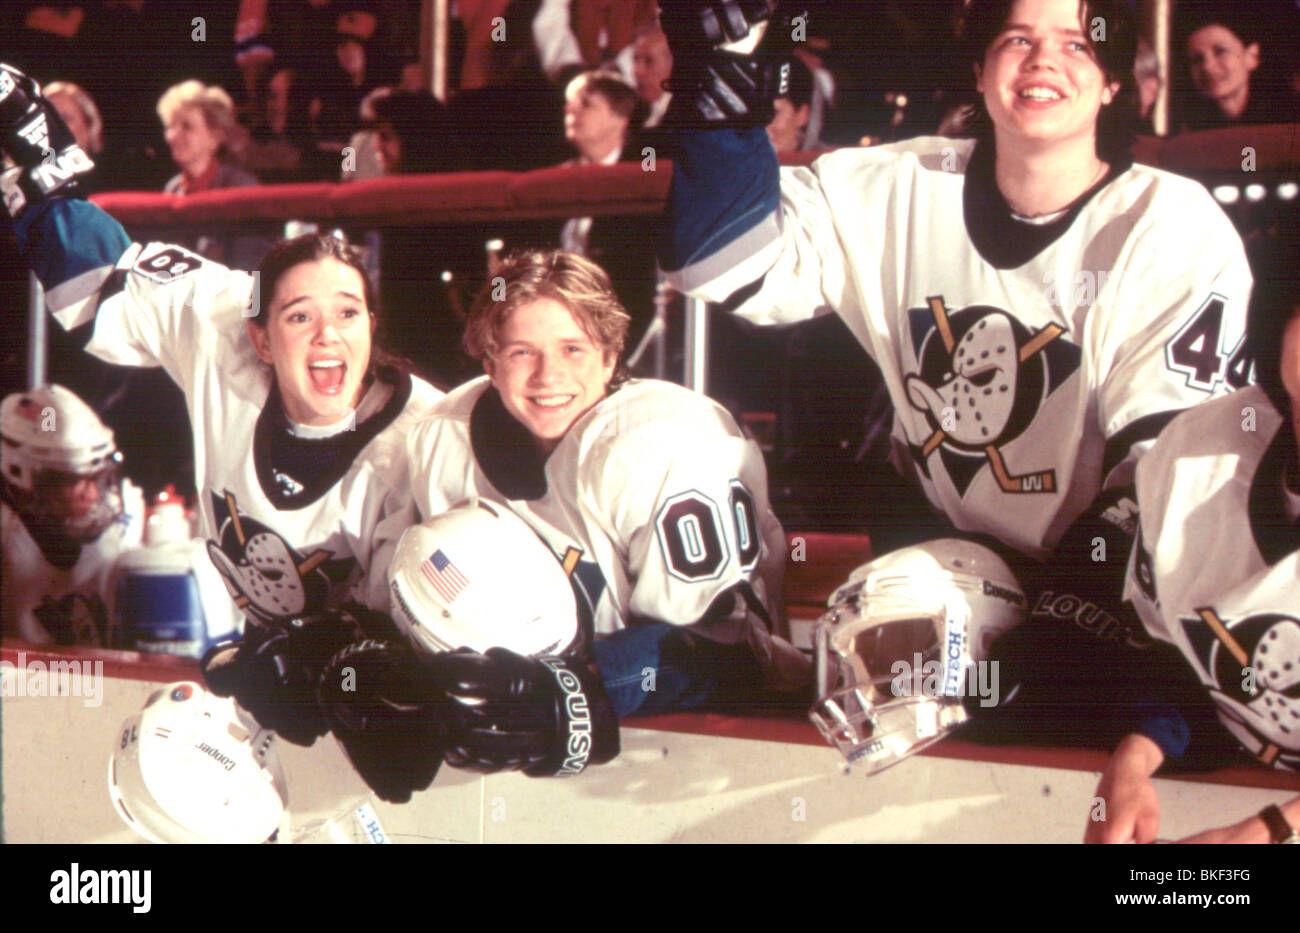 The Mighty Ducks 3